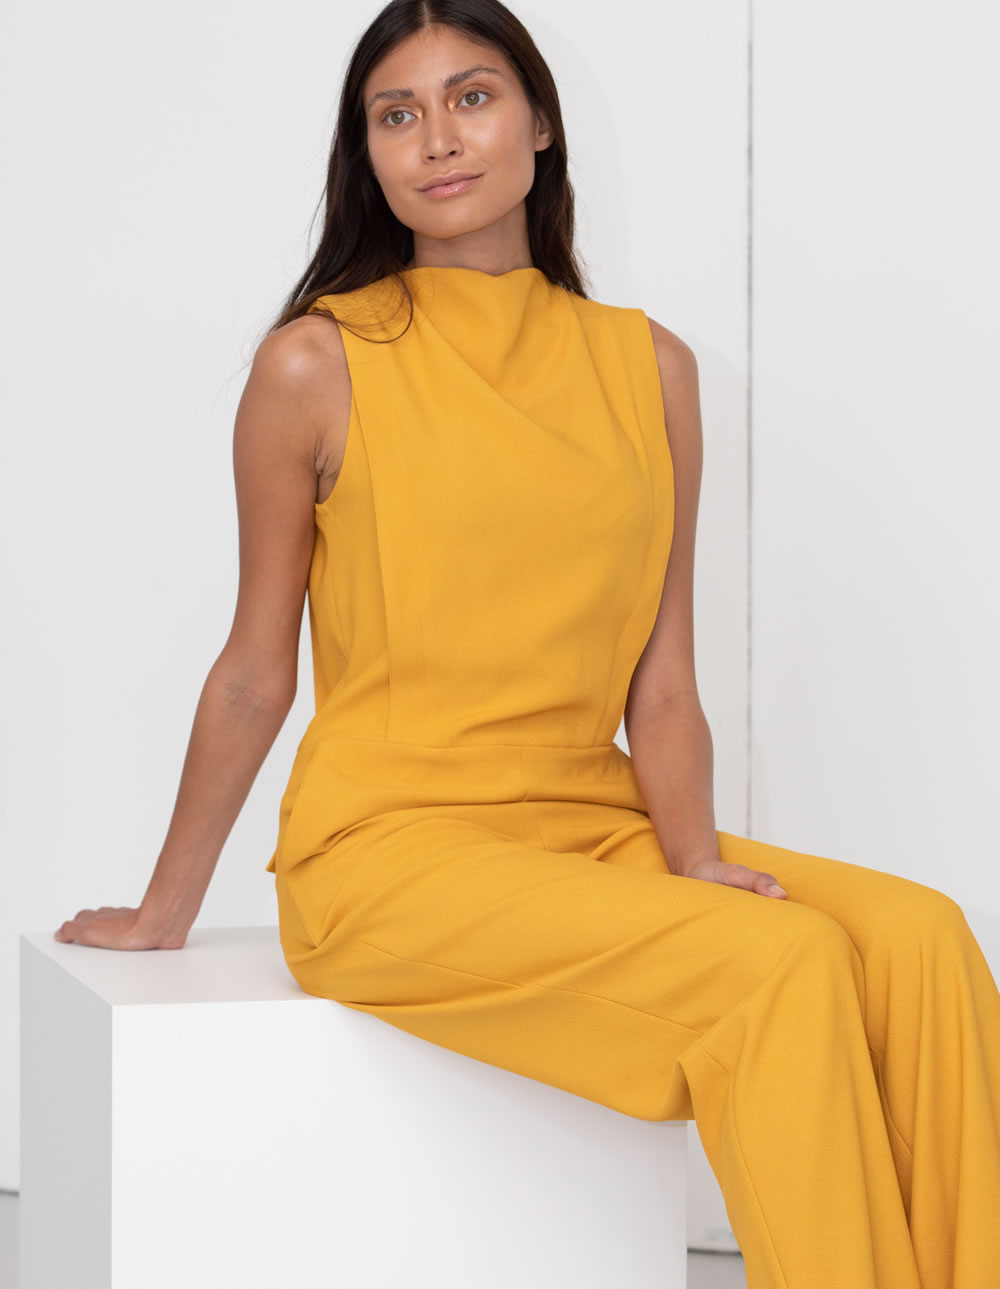 Introducing Riona Treacy, the slow-fashion brand with a contemporary aesthetic